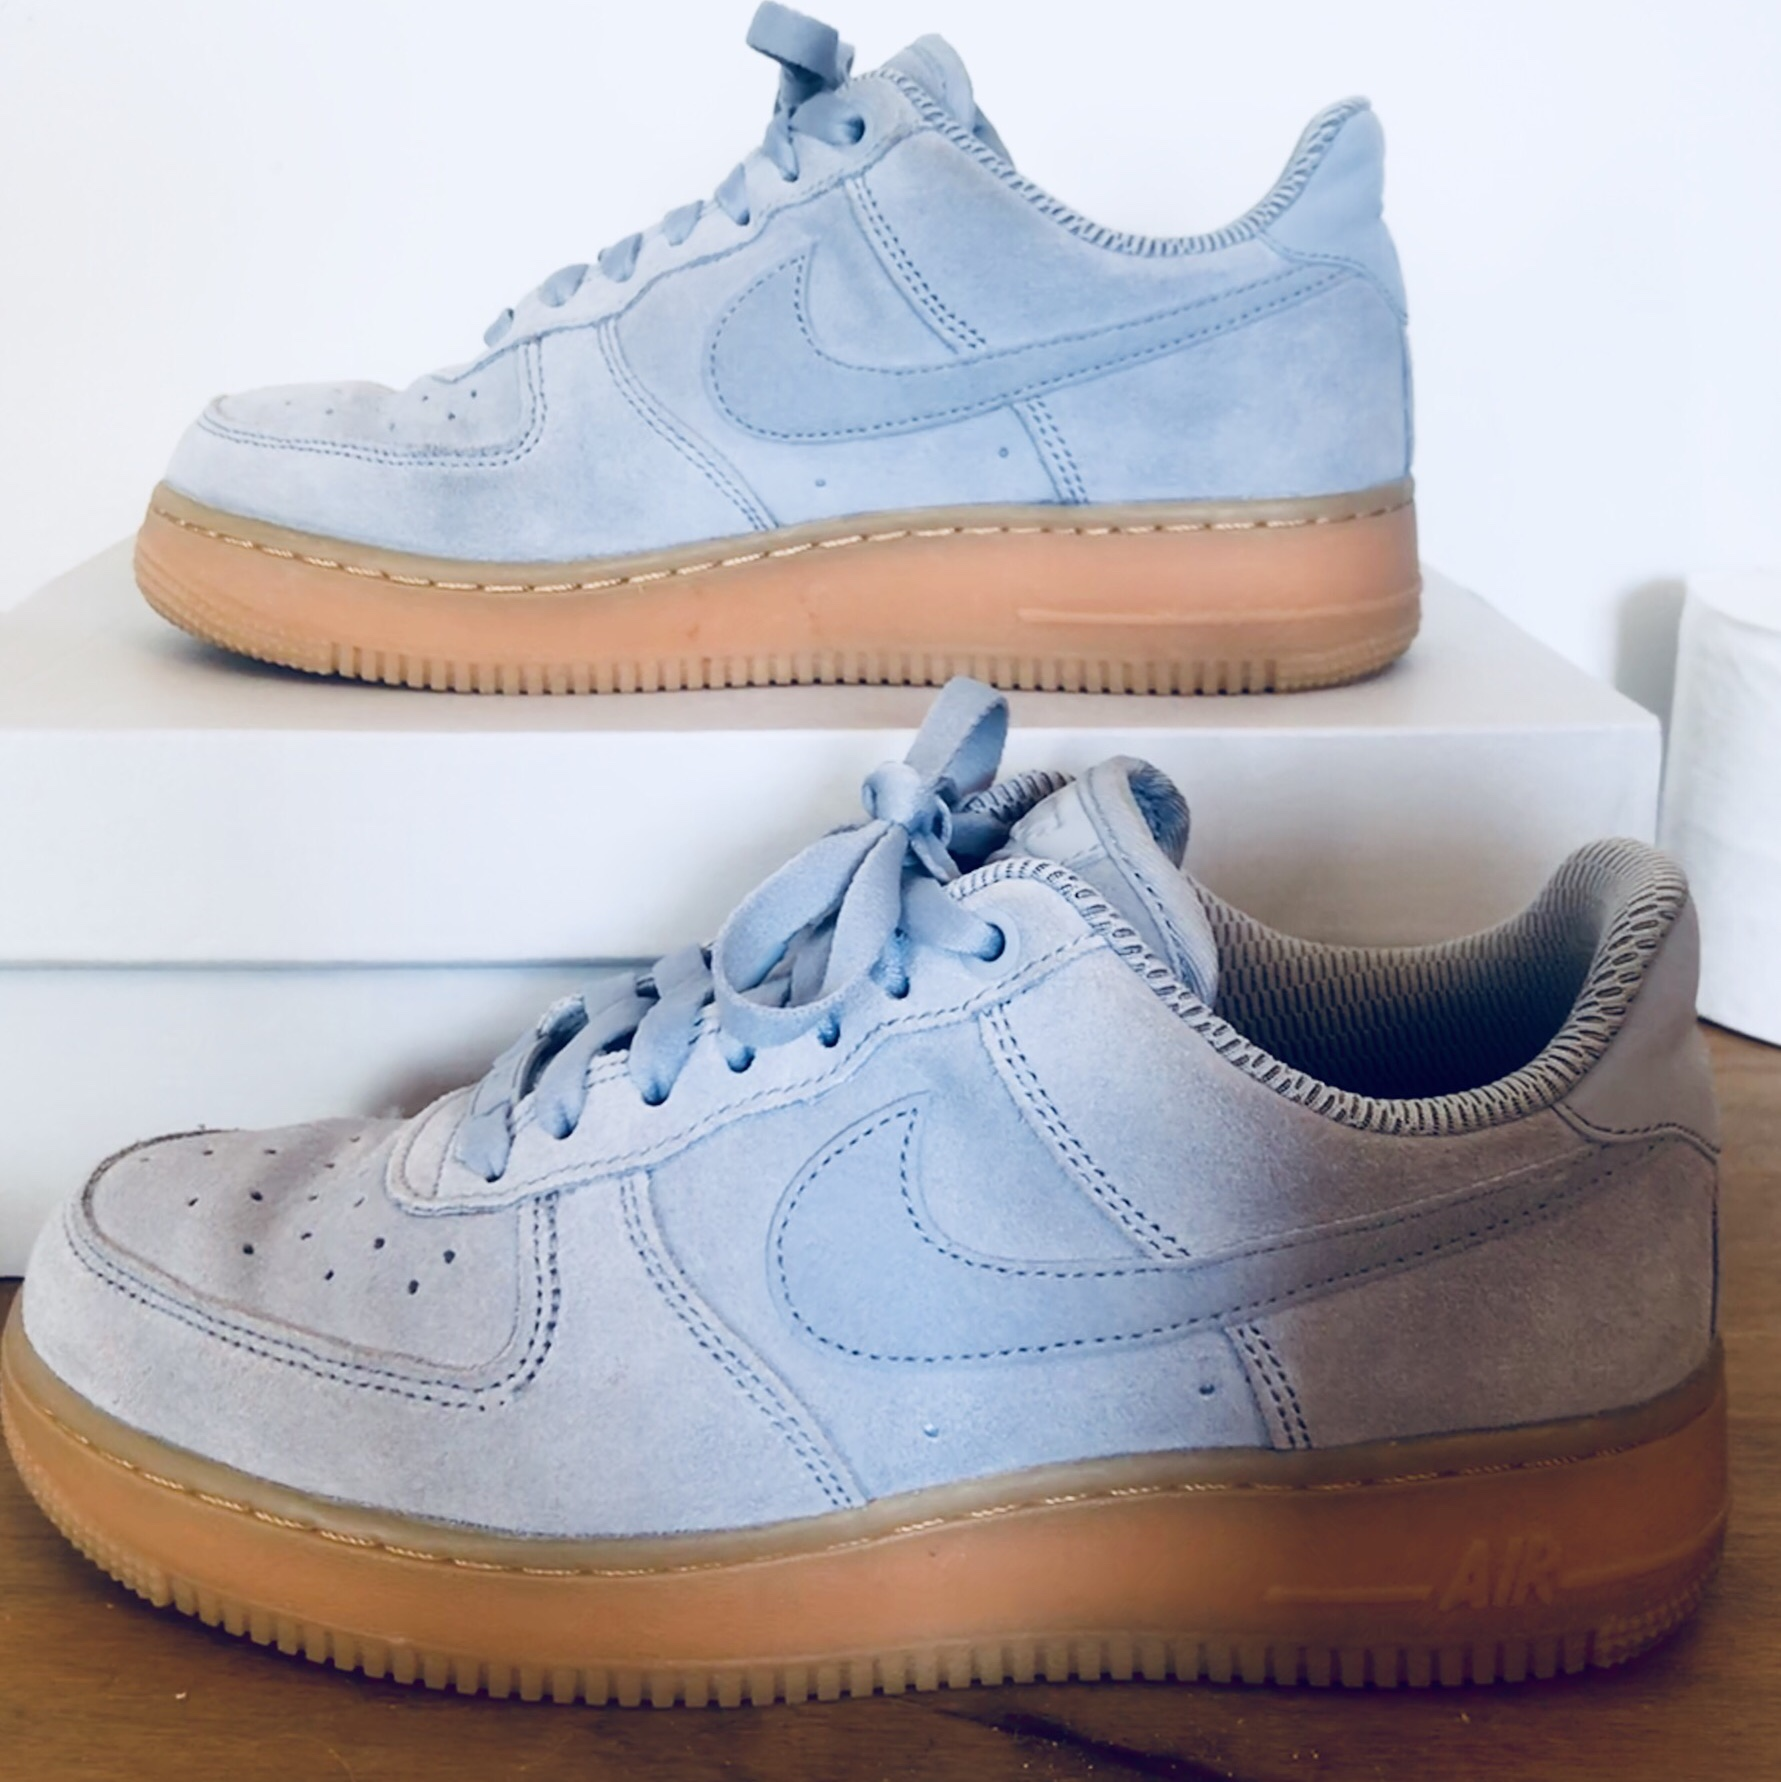 Suede Gum Blue Nike With In Force Depop Air SoleSize 1 ZTOXPuki